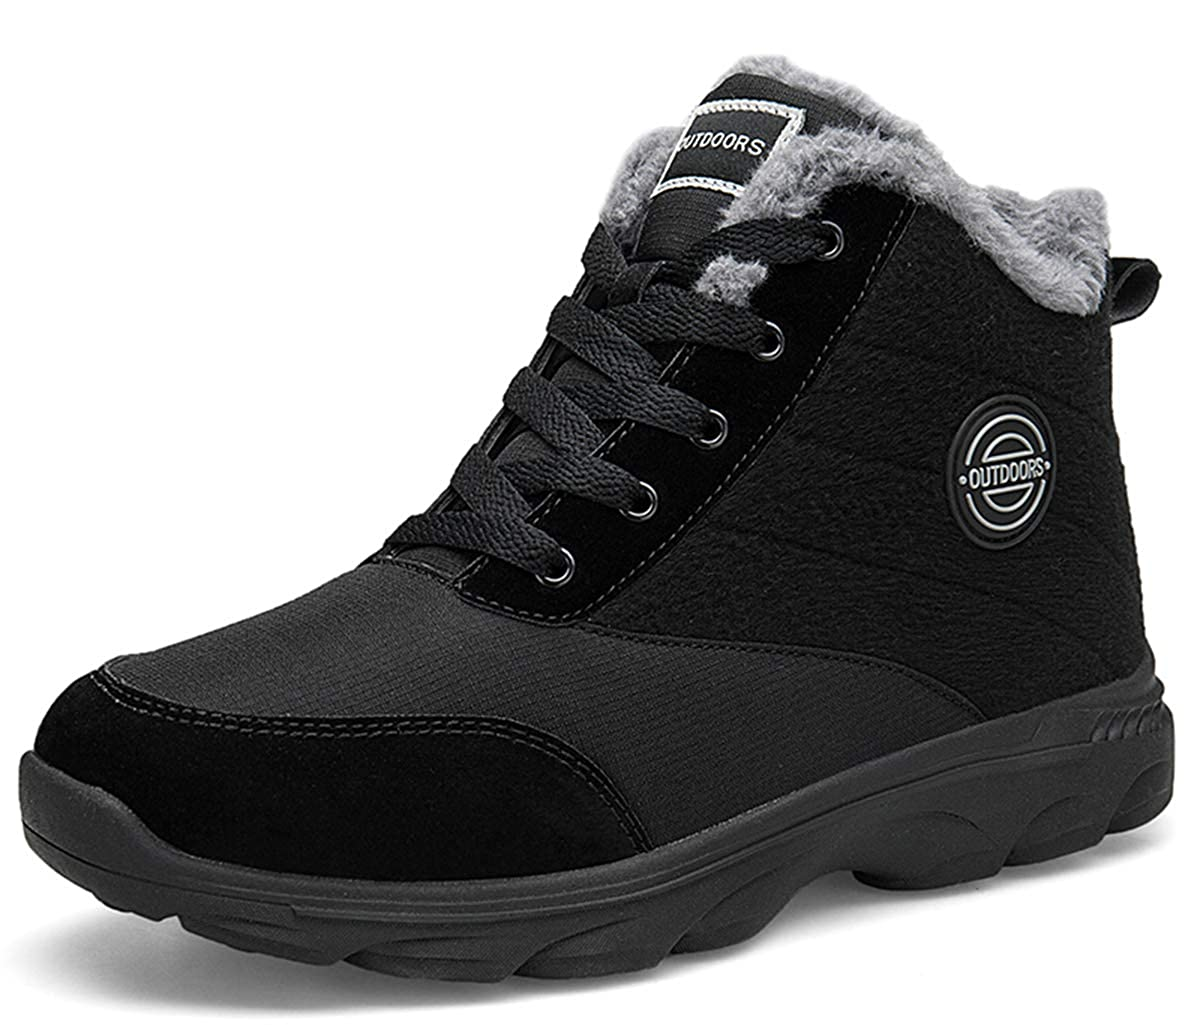 Black BomKinta Women's Snow Boots Water Resistant Surface Anti-Slip Soft Sole Warm Fur Lined Winter Ankle Booties